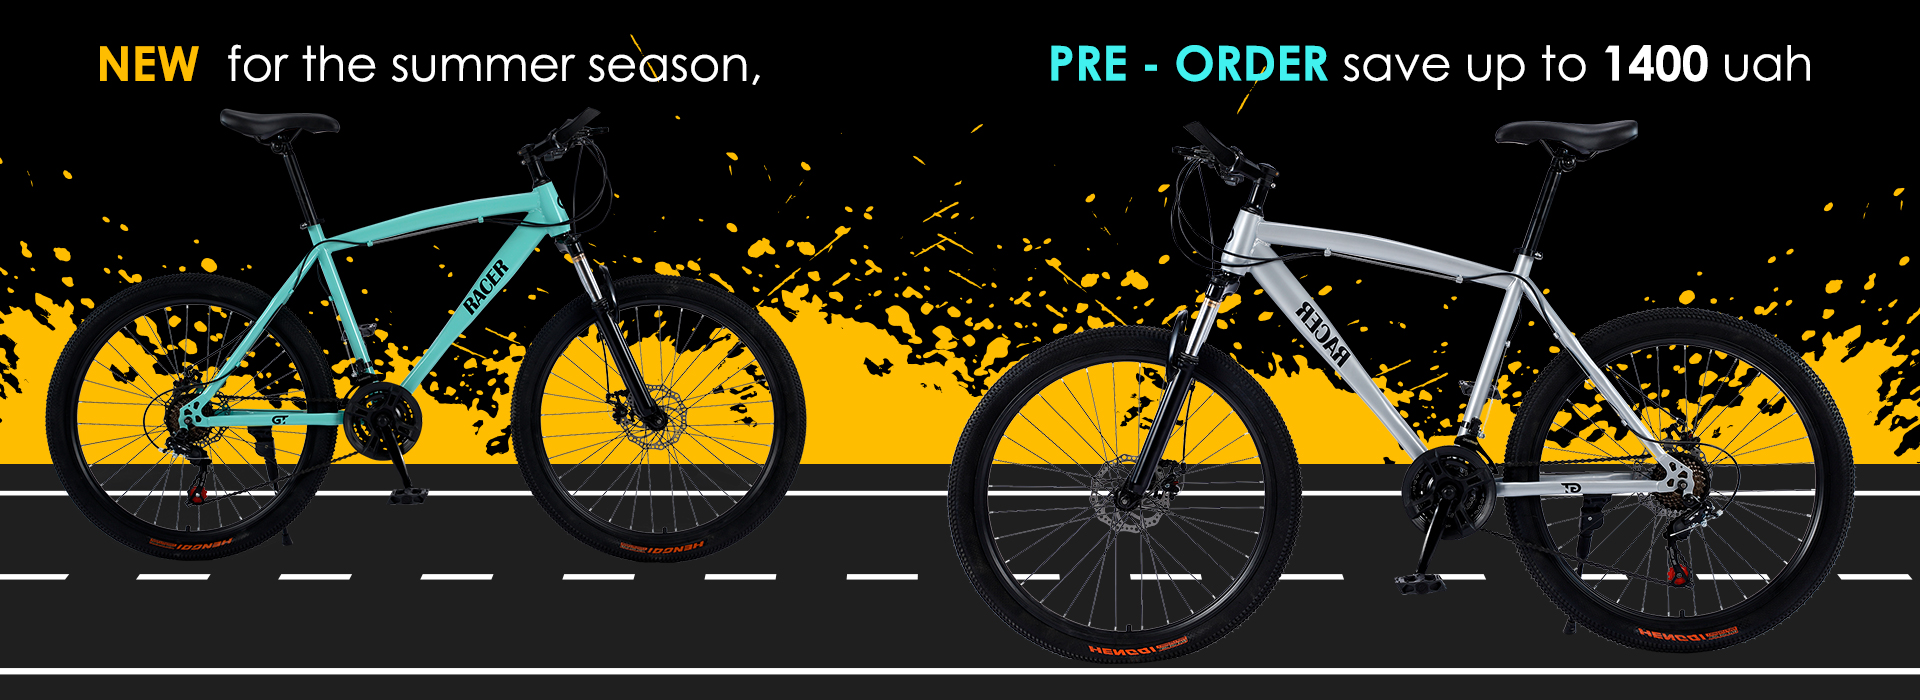 Stock! Discount on pre-order Gt Racer bikes!